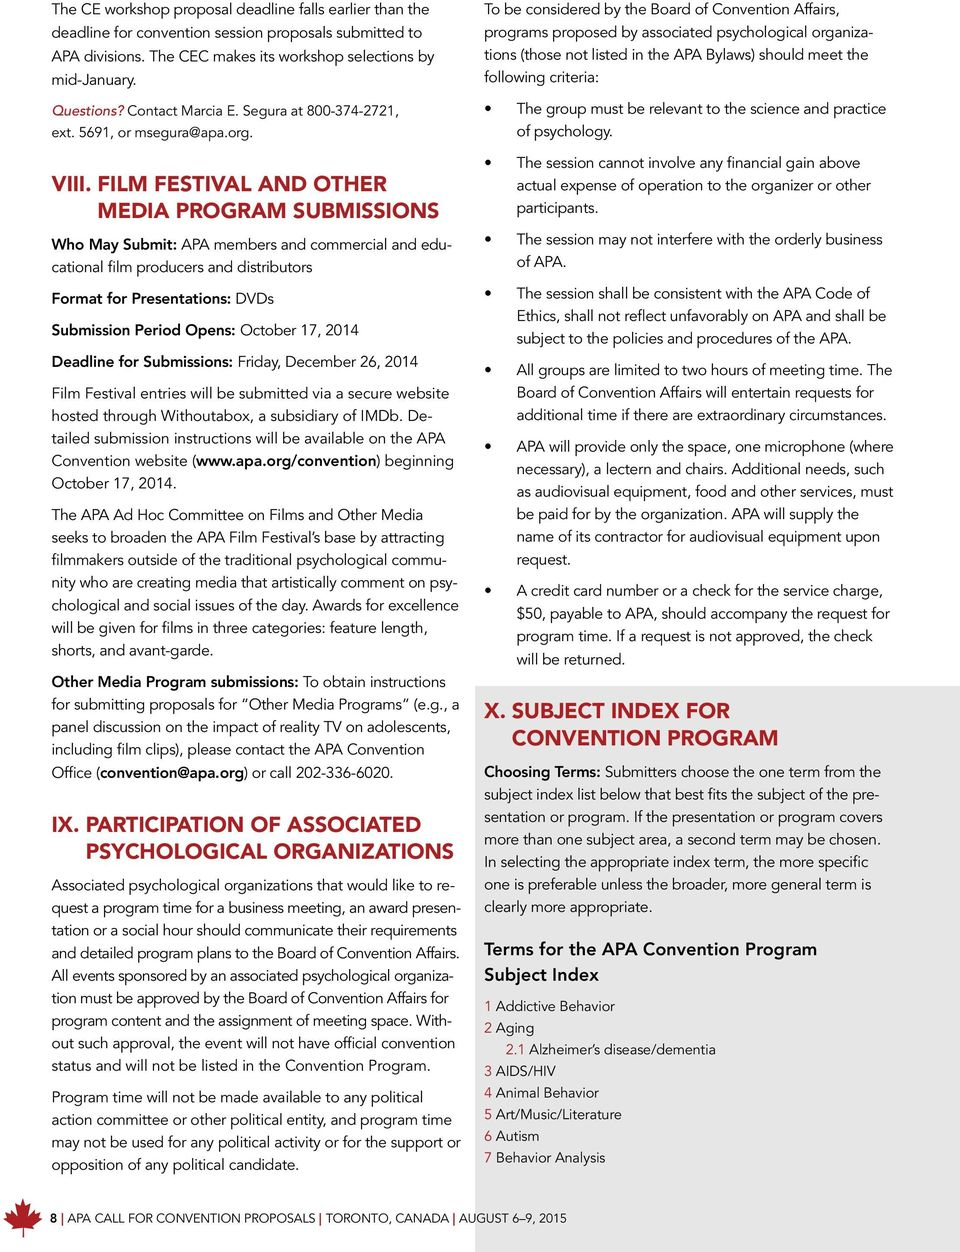 FILM FESTIVAL AND OTHER MEDIA PROGRAM SUBMISSIONS Who May Submit: APA members and commercial and educational film producers and distributors Format for Presentations: DVDs Submission Period Opens: